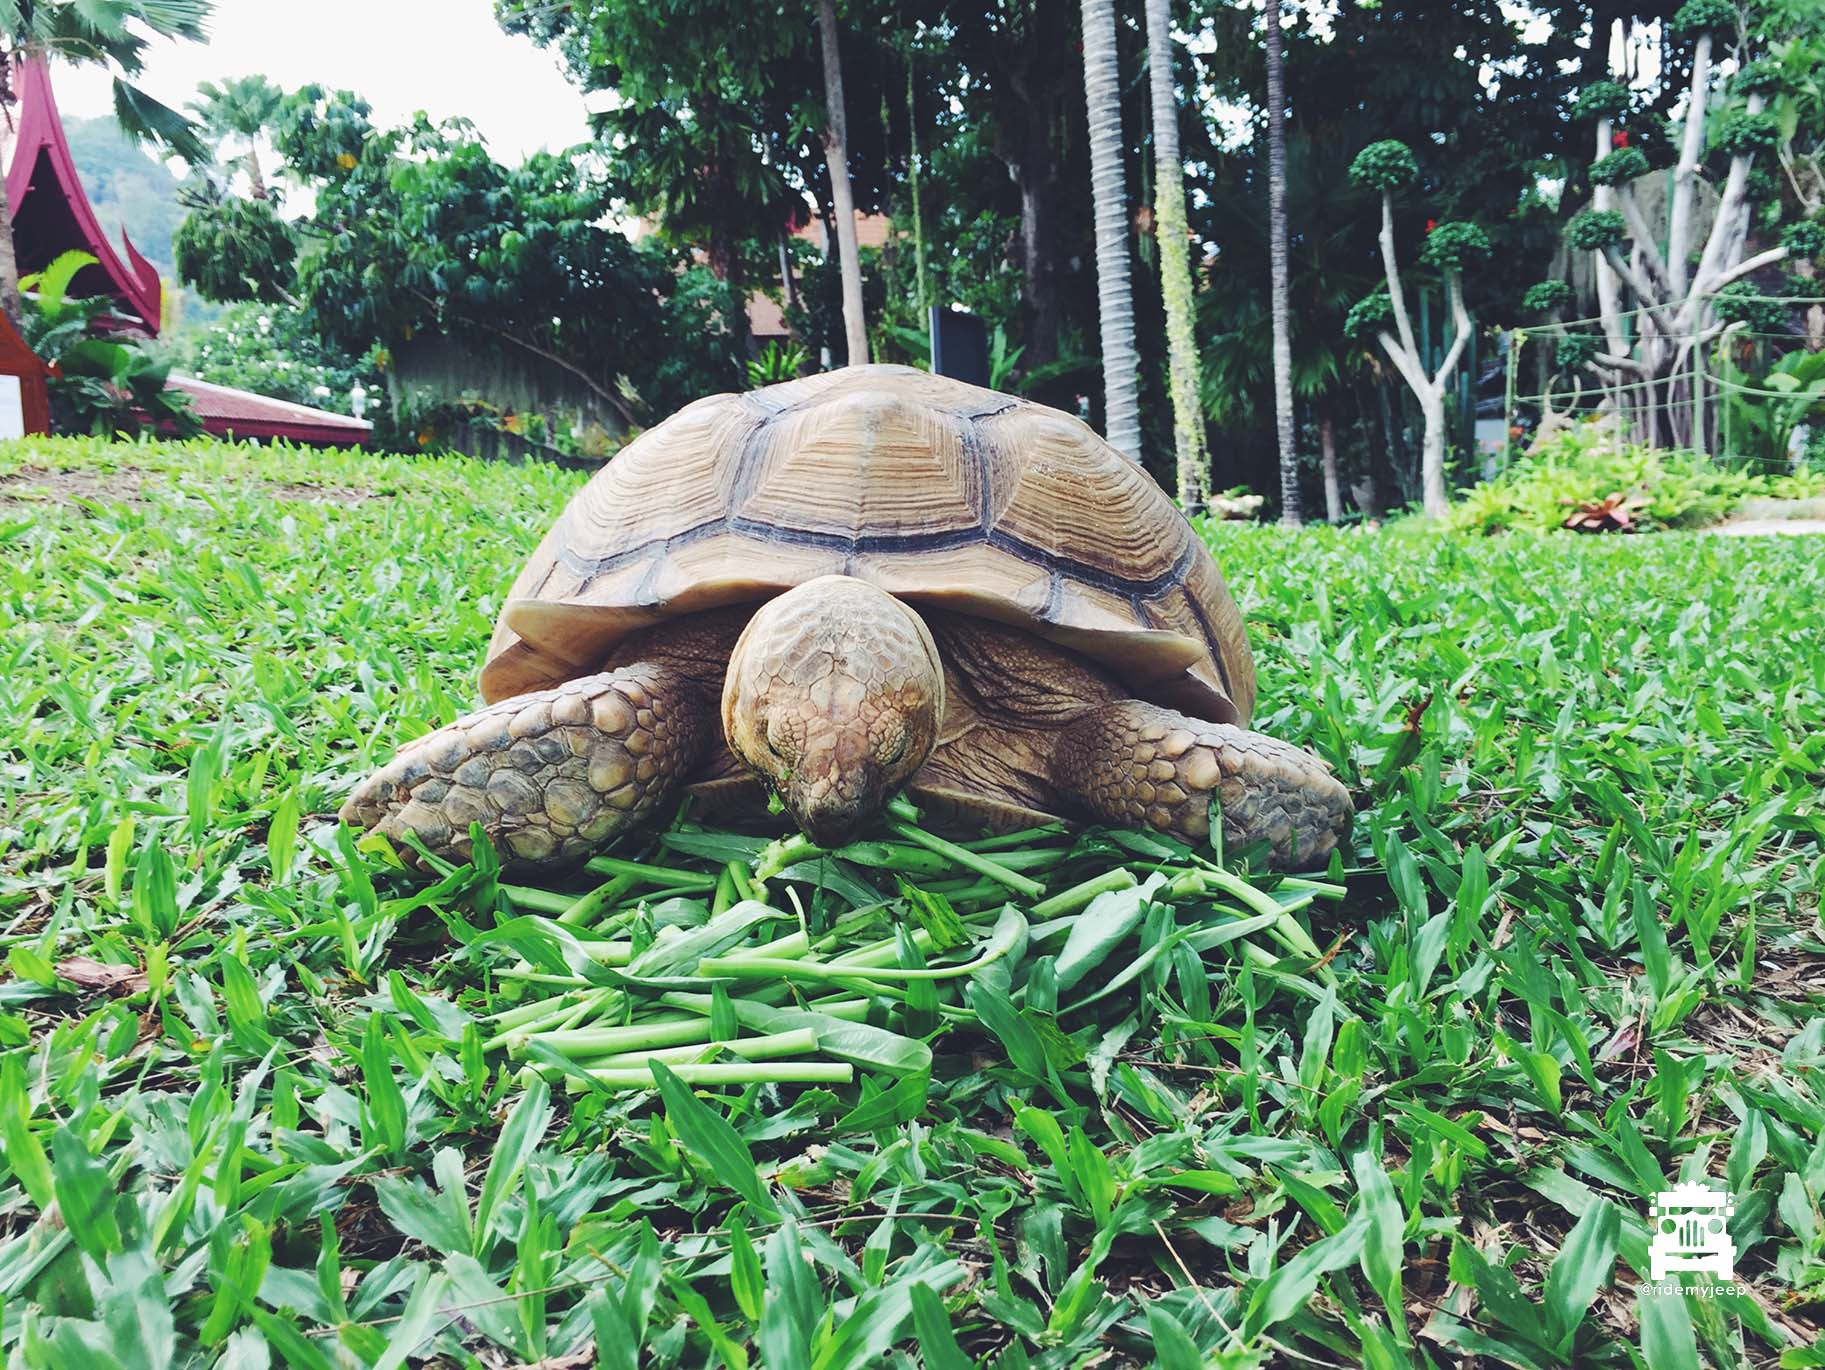 Back at the resort, the resident tortoise munching on his lunch